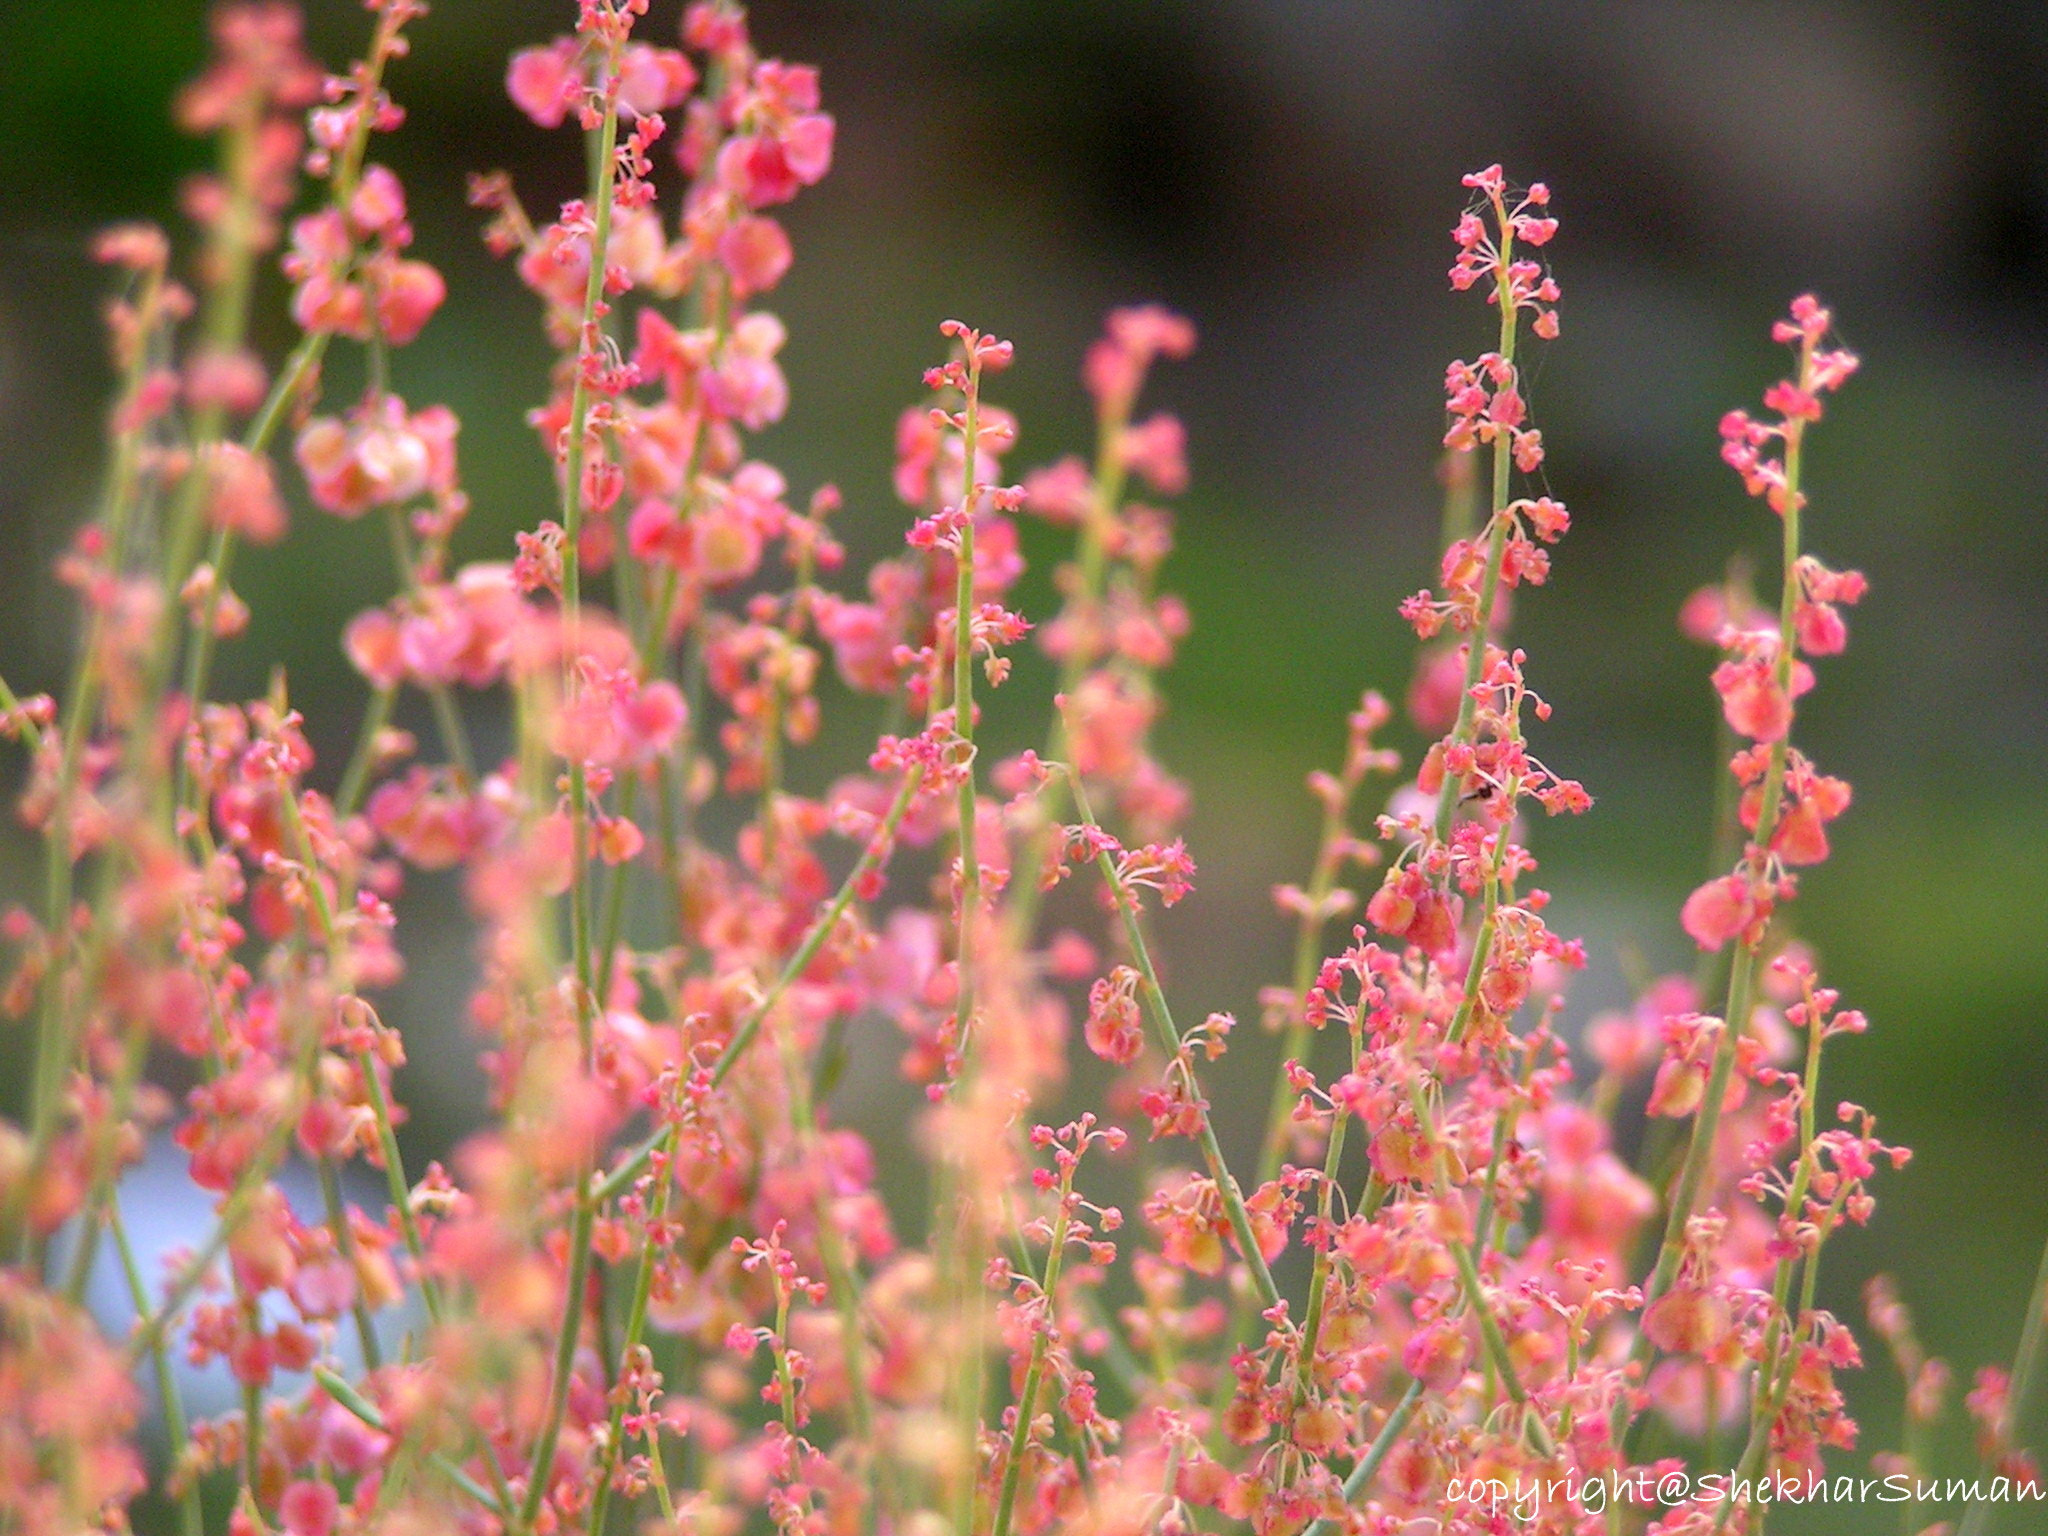 Photograph weeds.! by Shekhar Suman on 500px